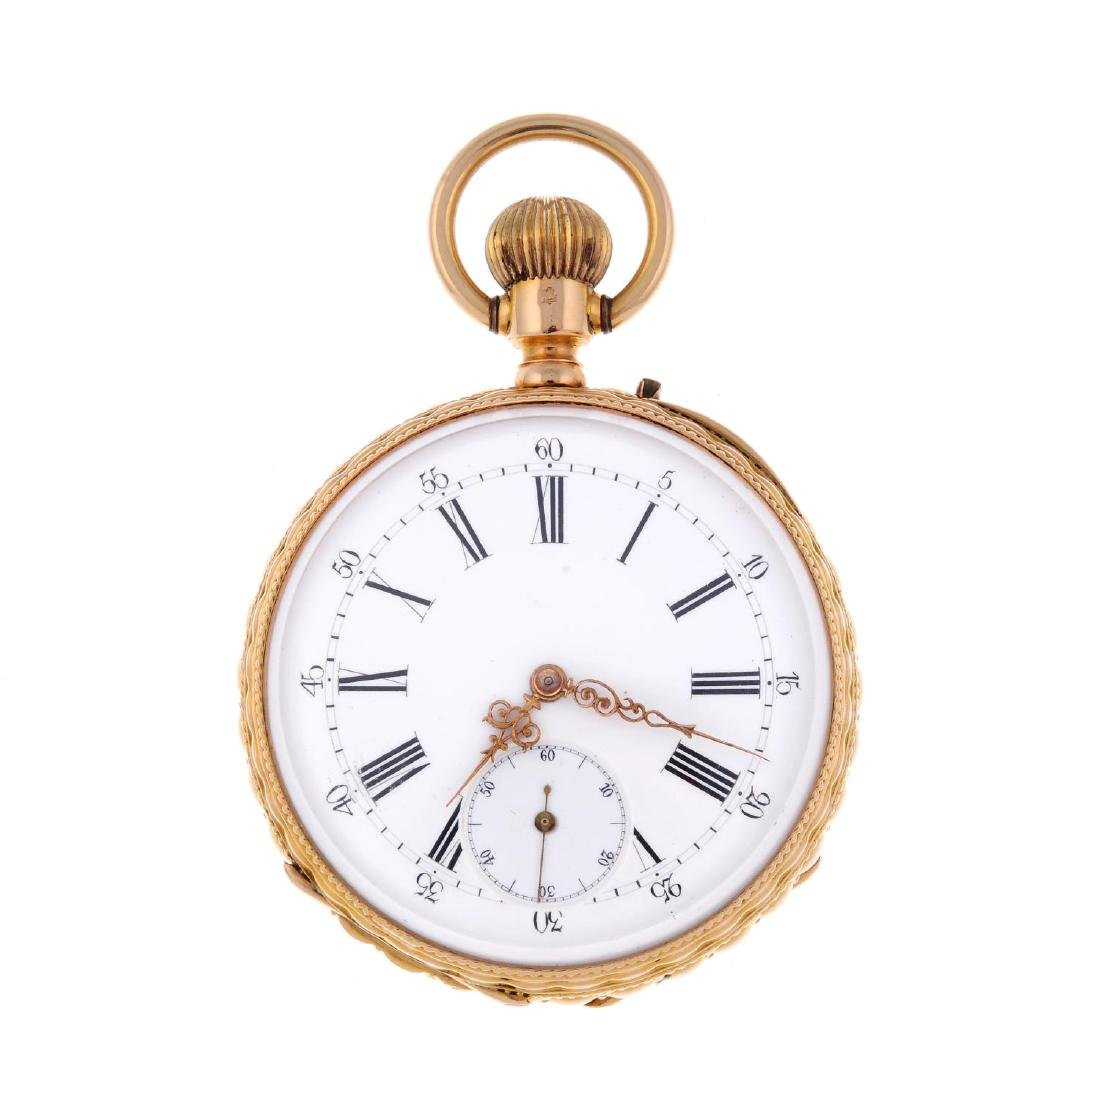 An open face pocket watch. Yellow metal case with